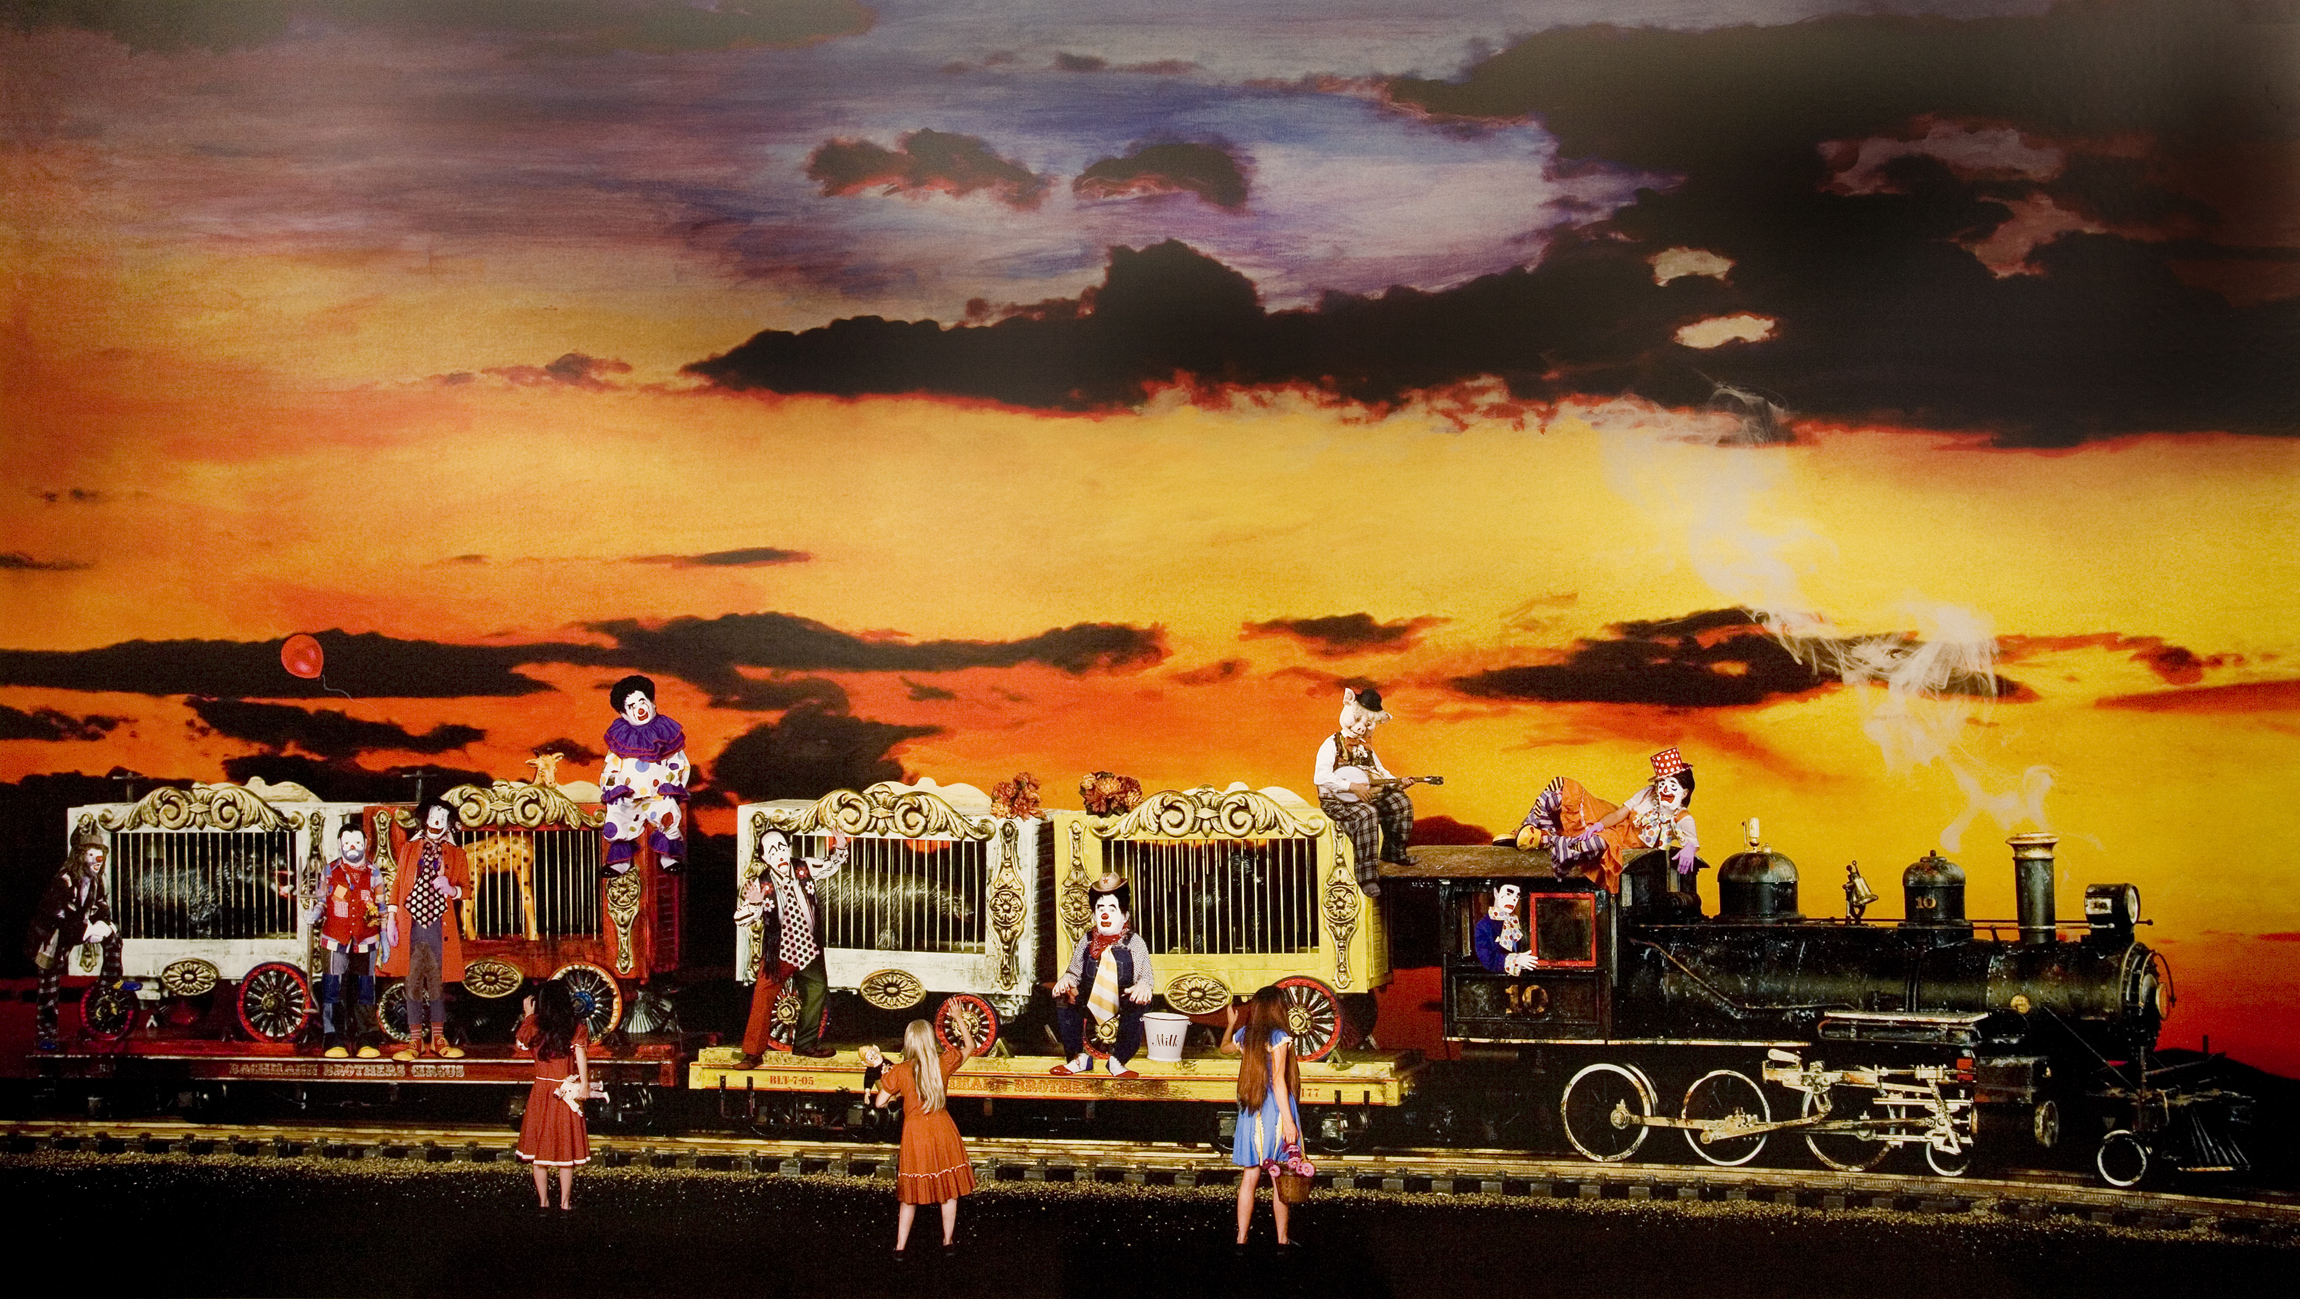 The Arrival of The Circus Clowns, 2008 collages on archival pigment print mounted on Sintra 104 x 181 cm - 40 x 71 1/4 inches (framed)